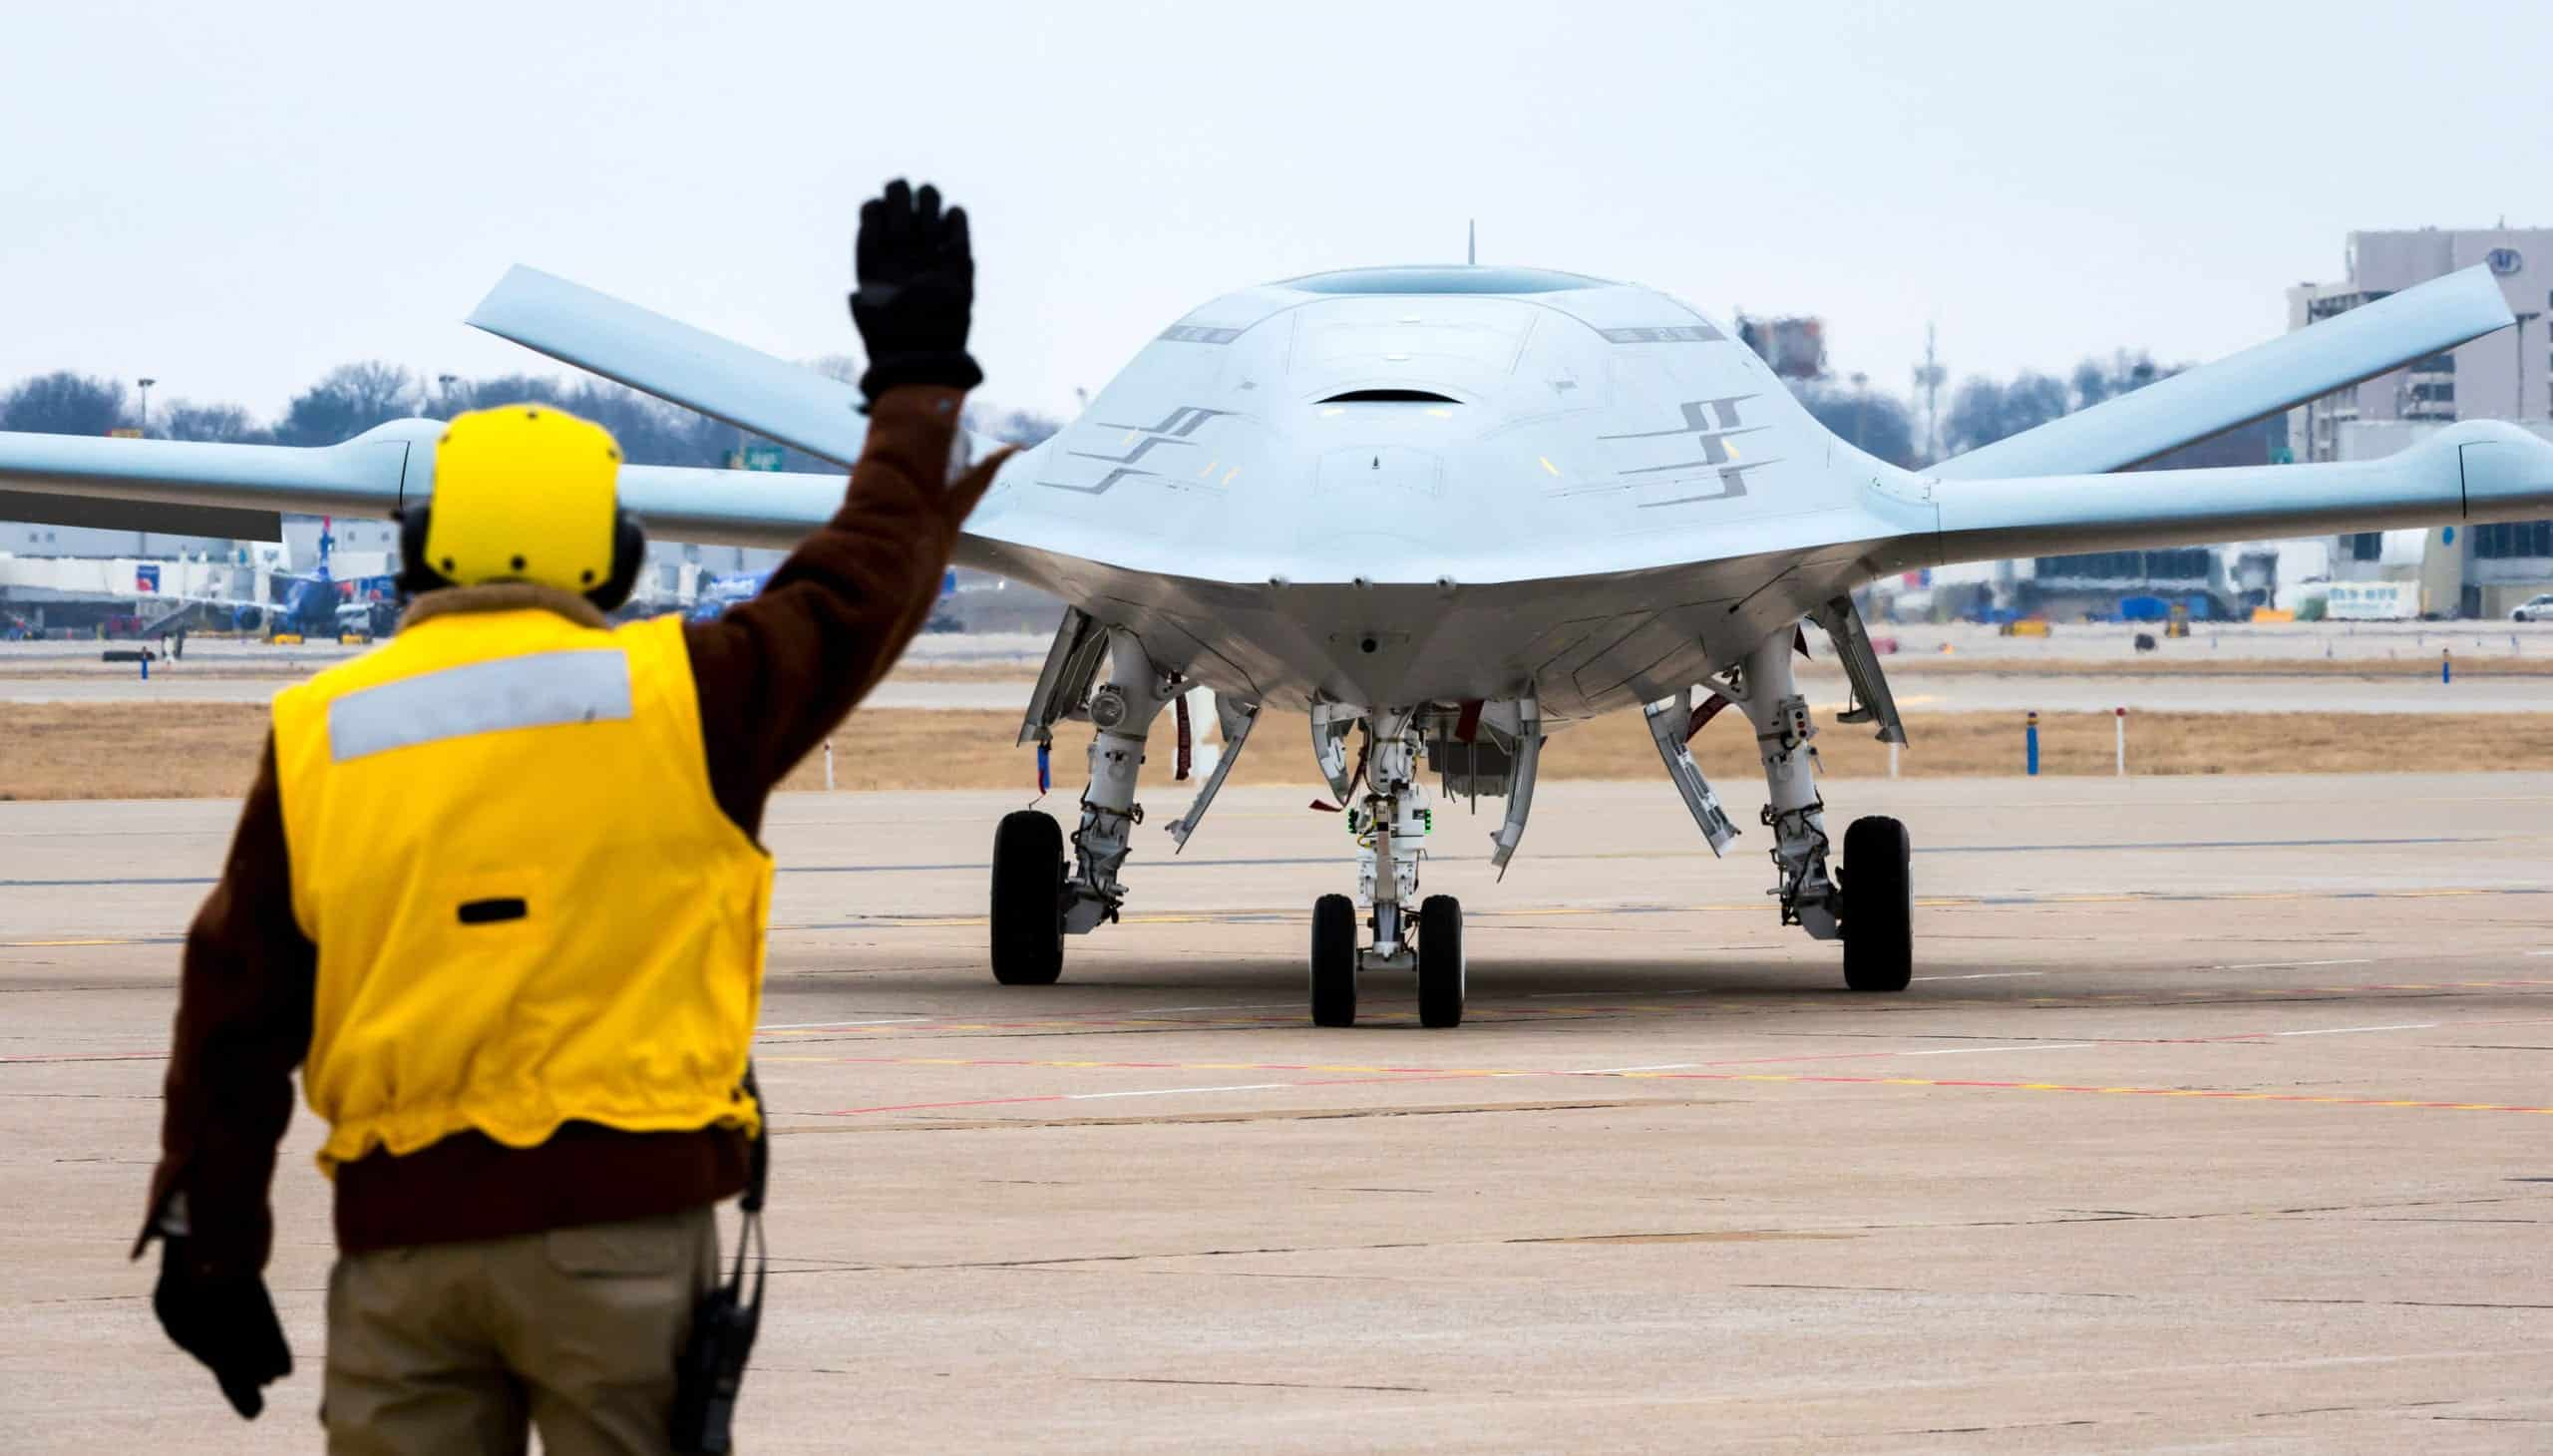 US Navy MQ-25 unmanned refueling aircraft